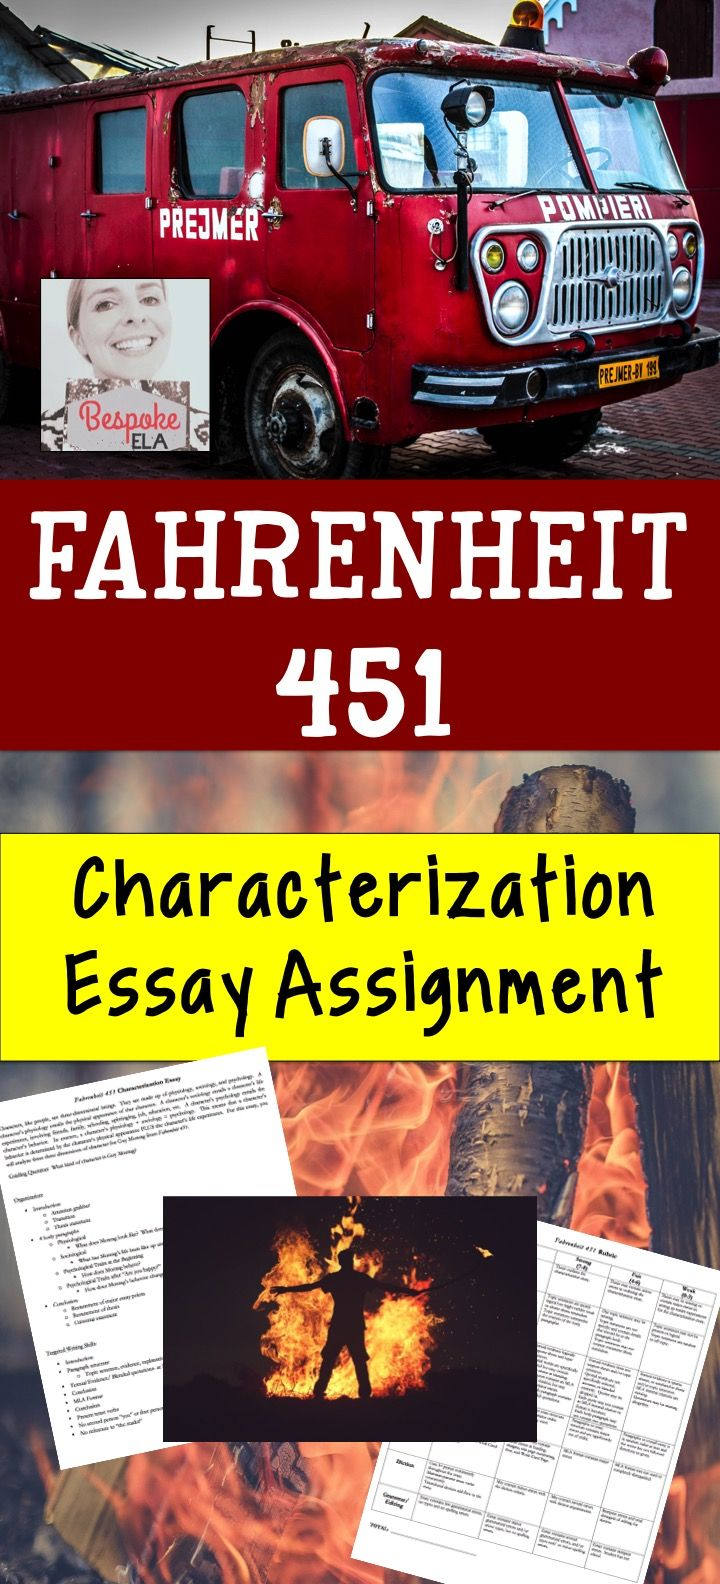 essay on the book fahrenheit 451 Such a lifestyle is depicted in the novel fahrenheit 451 by author ray bradbury fahrenheit 451, which is sometimes just referred to as fahrenheit, is one of.